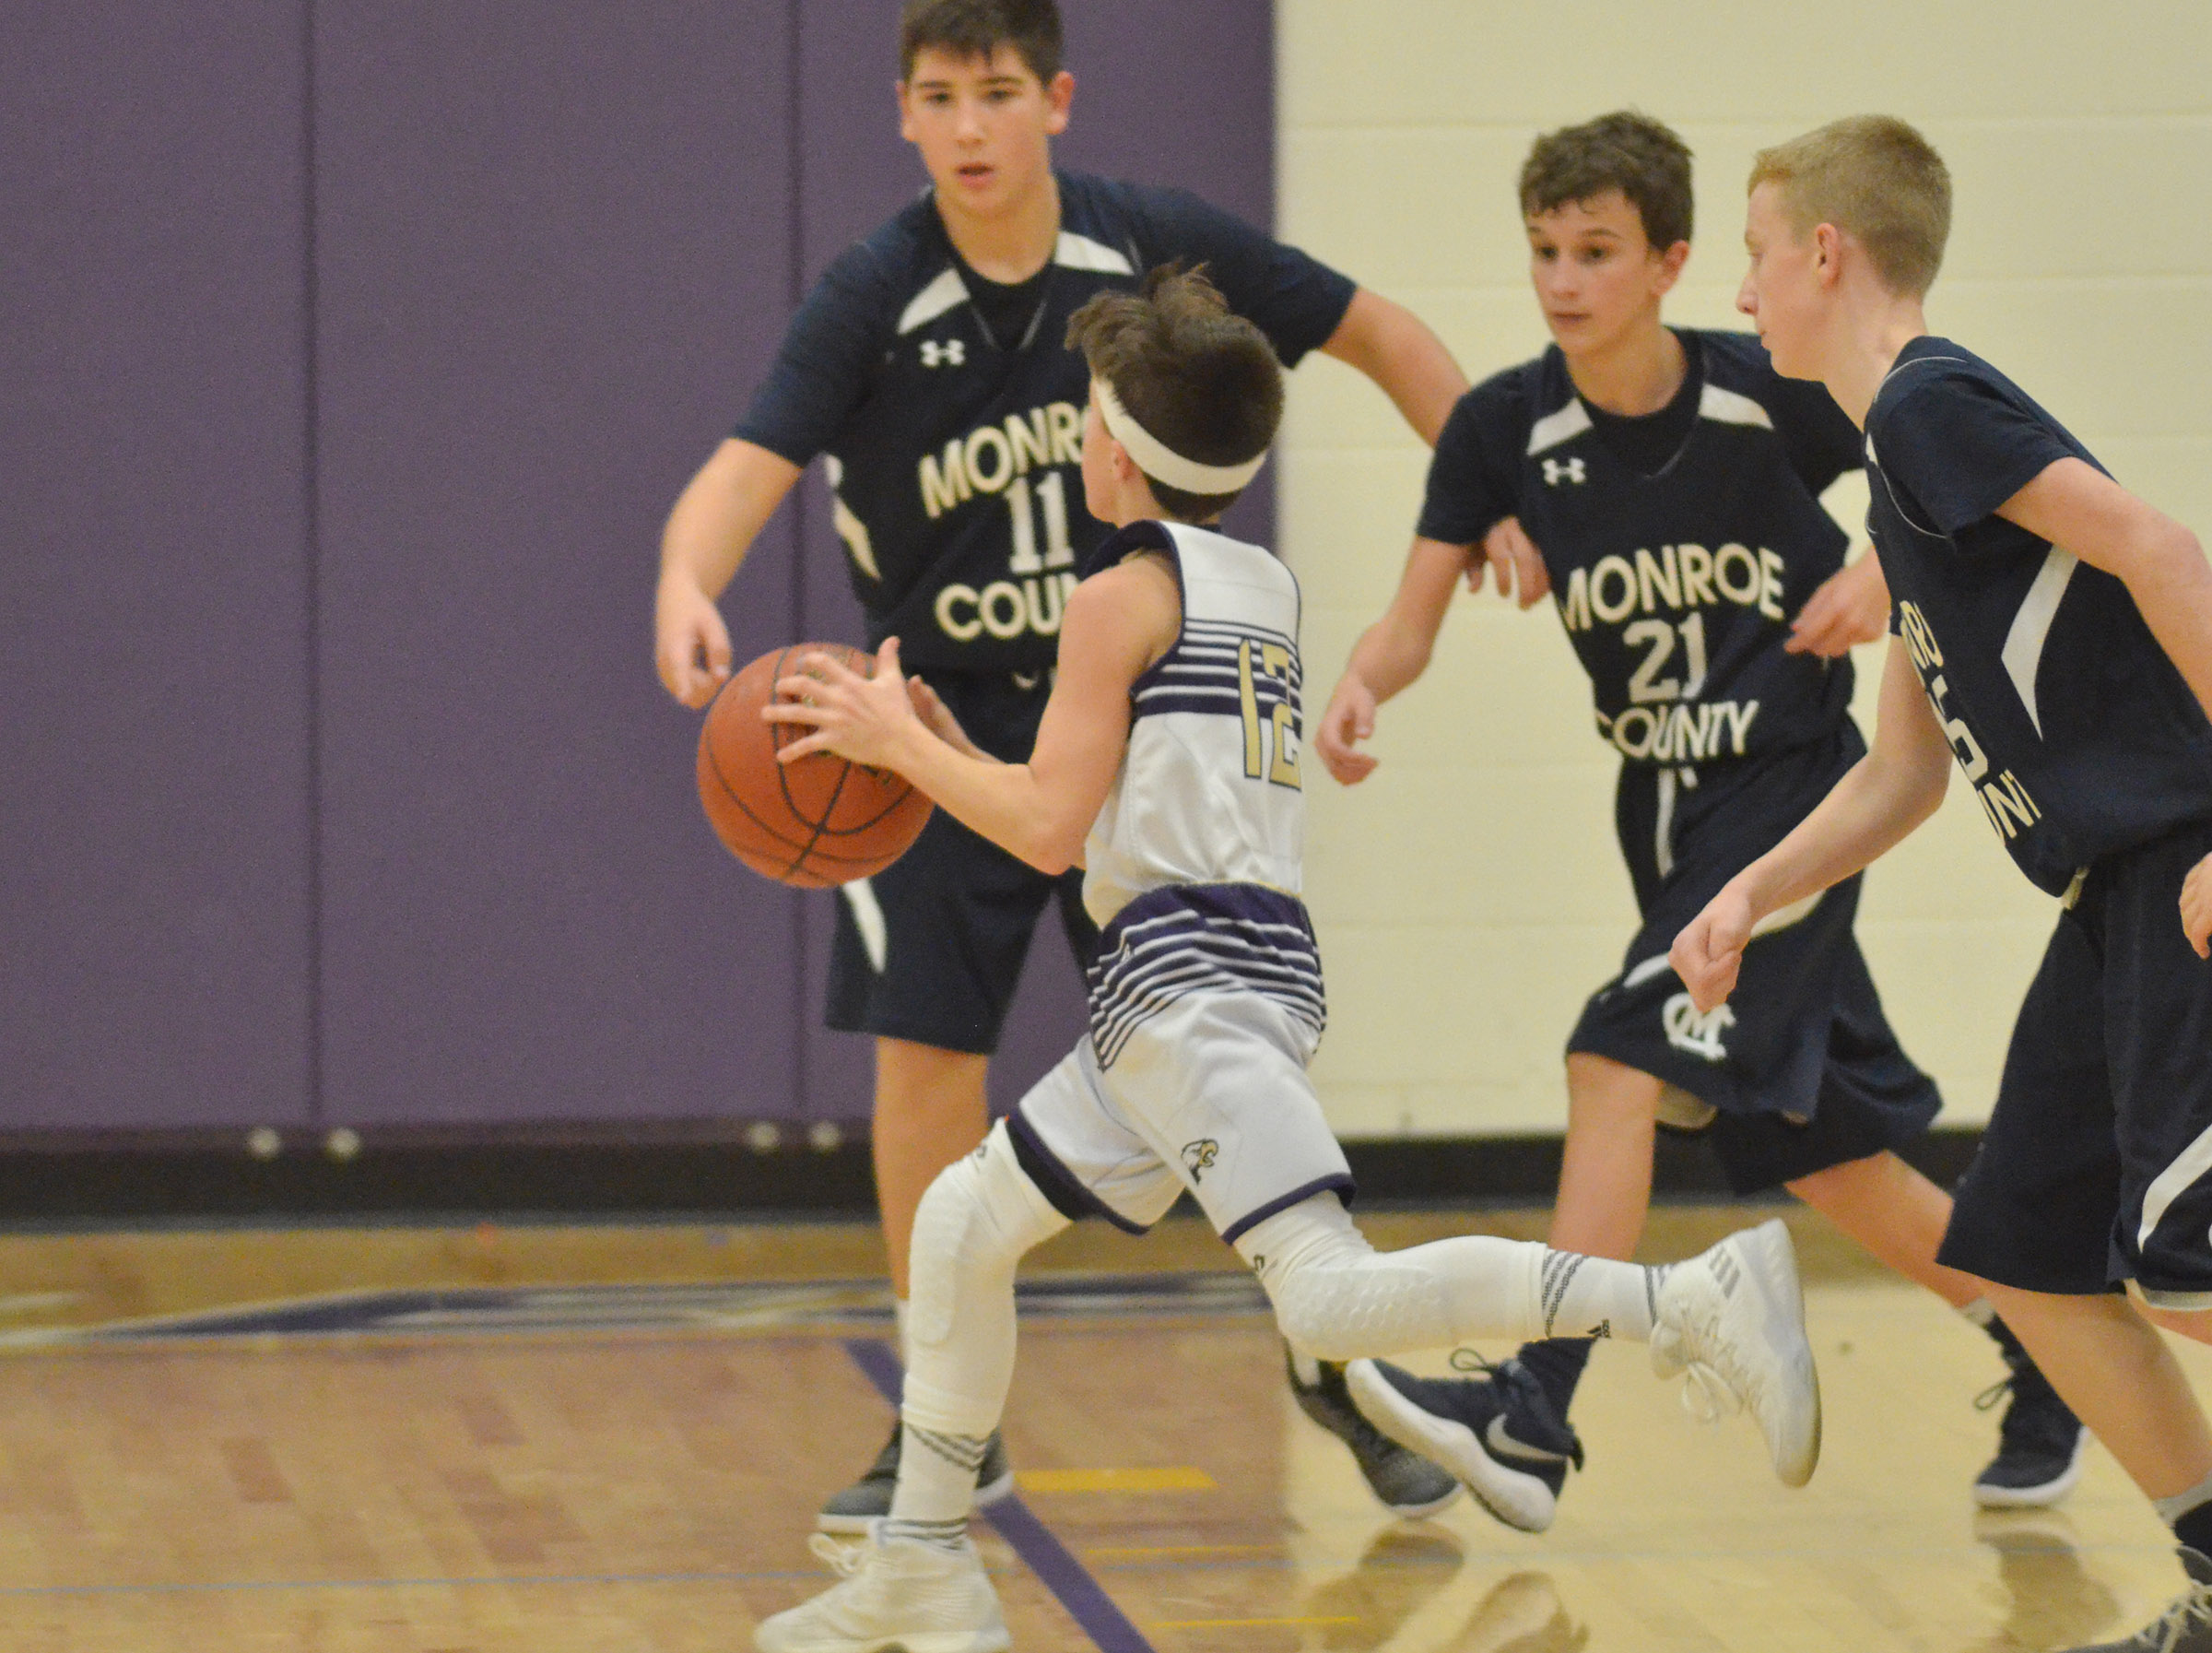 CMS seventh-grader Chase Hord drives the ball to the basket.